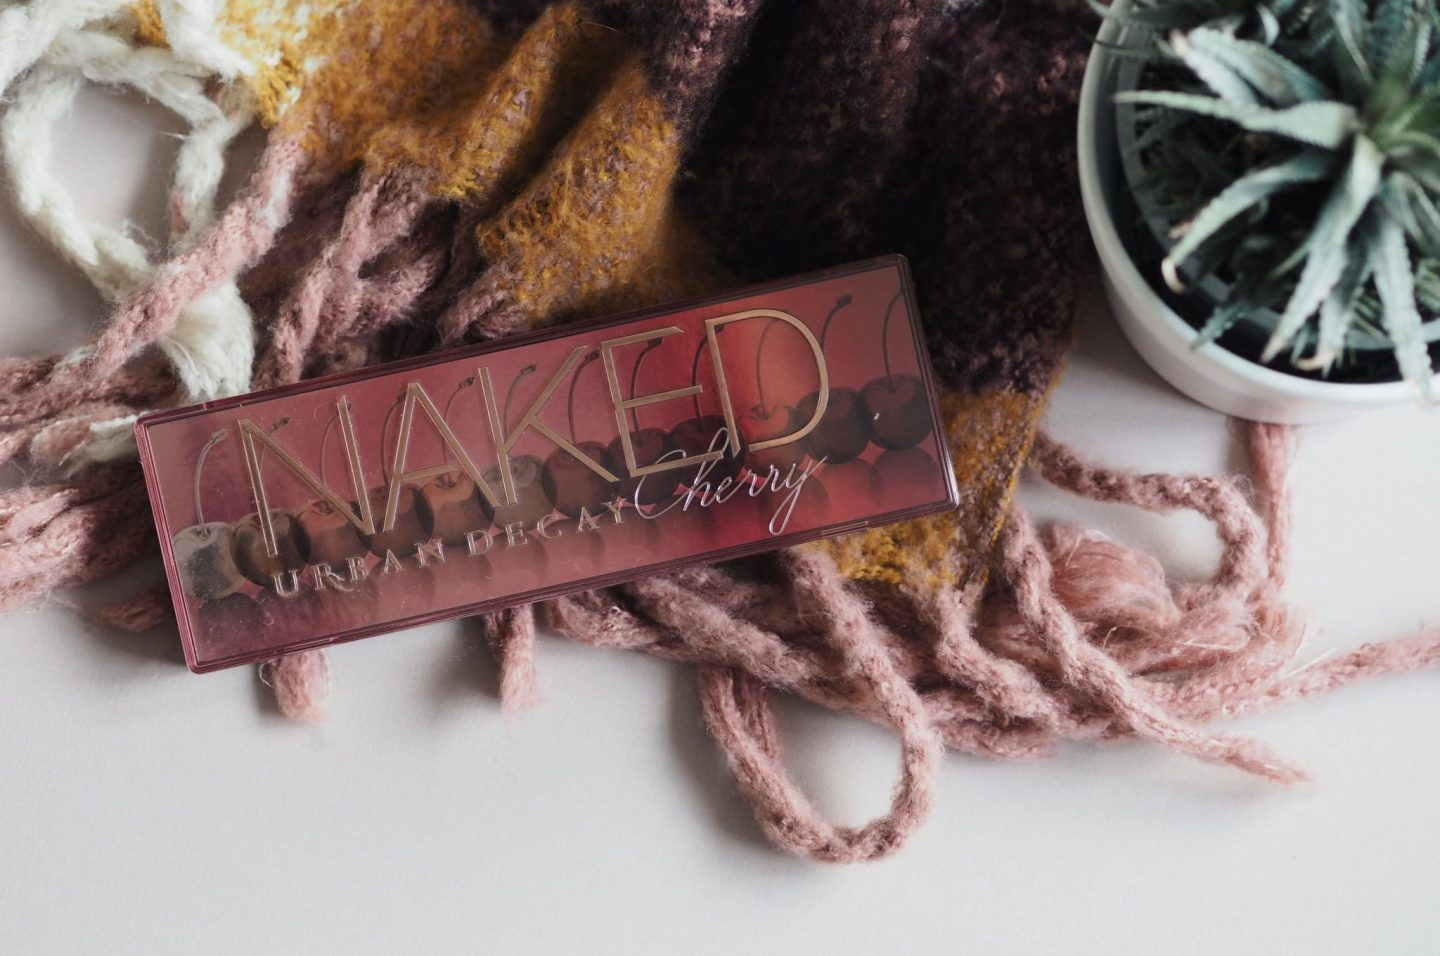 A pink eyeshadow palette upon a pink scarf next to a spiky potted plant